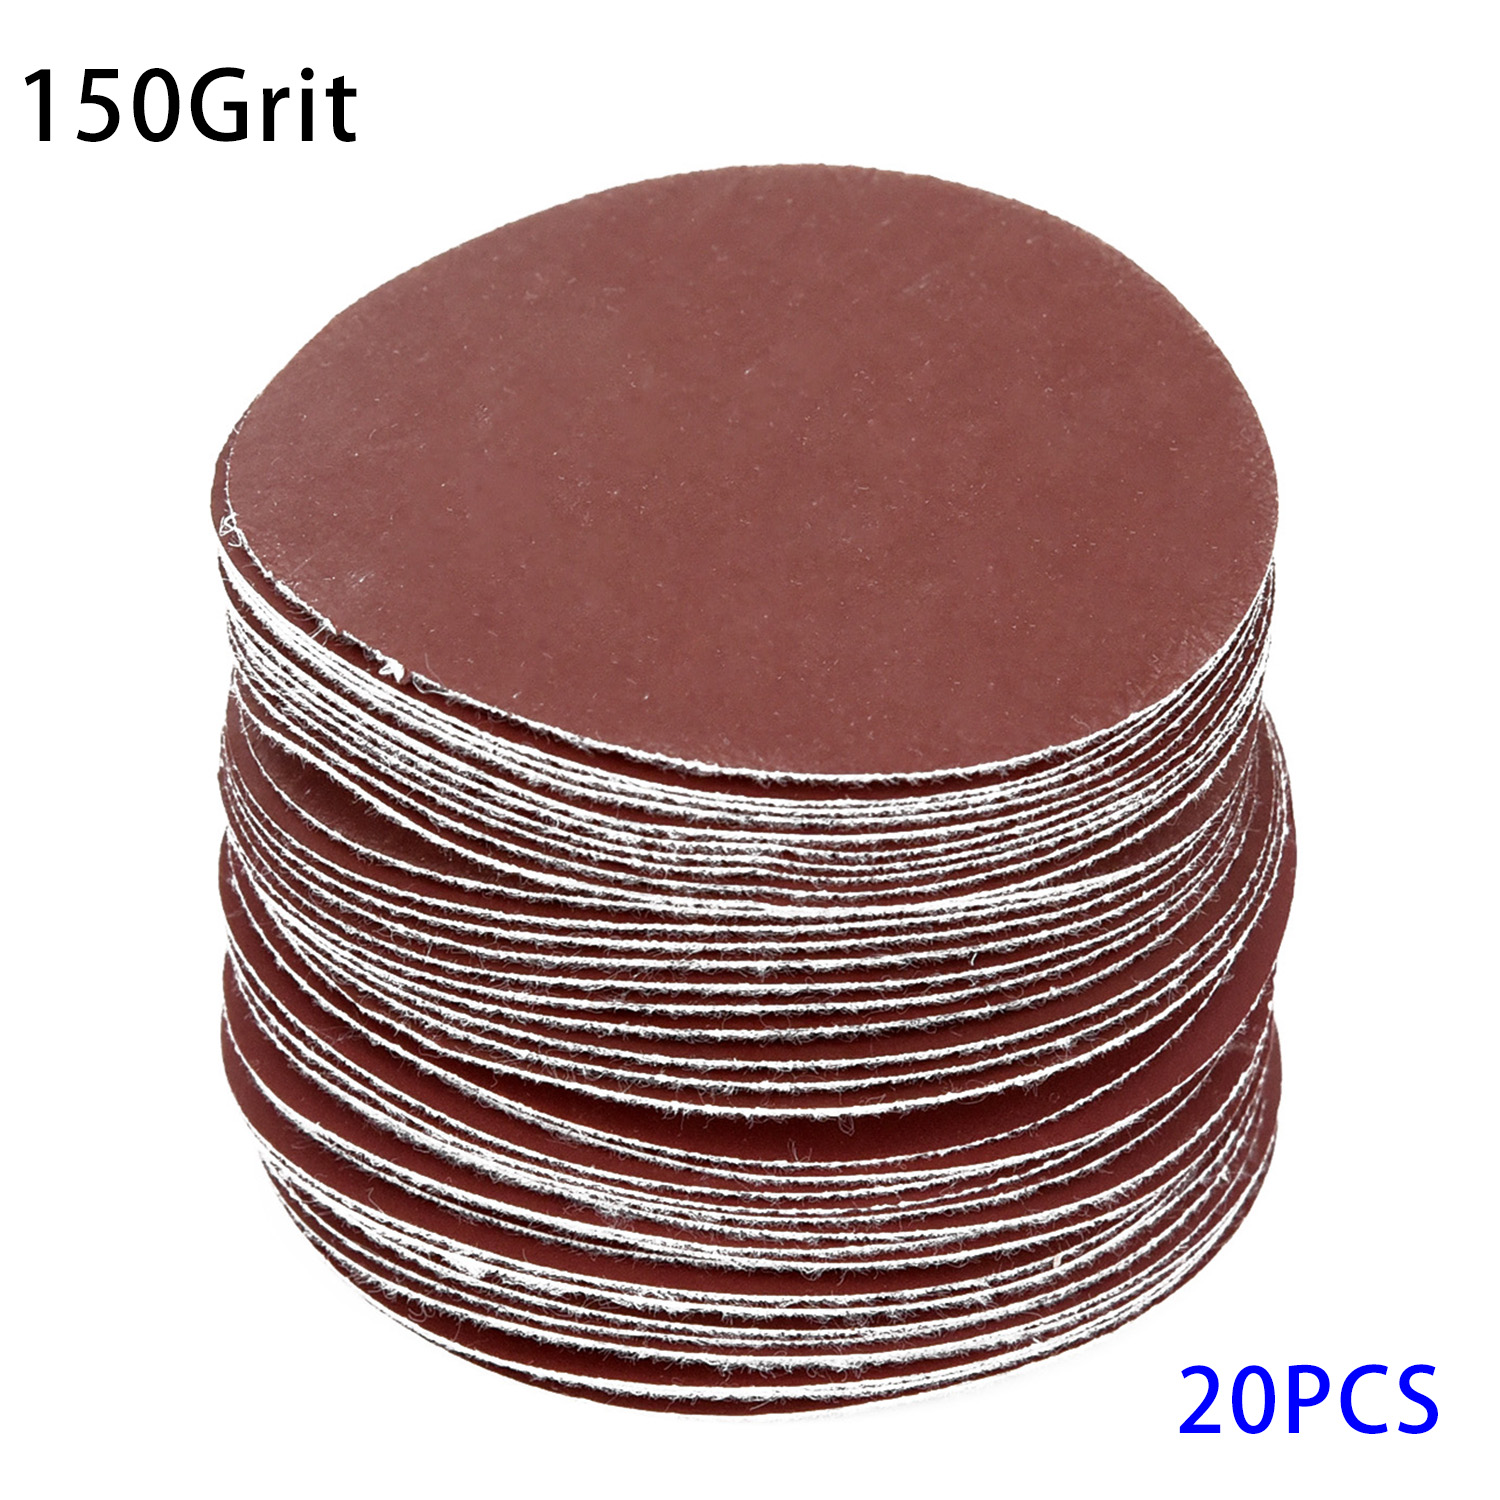 20 Pcs 3 Inch/75mm 40~3000Grit Sander Discs Sanding Polishing Pads Sandpaper Lot